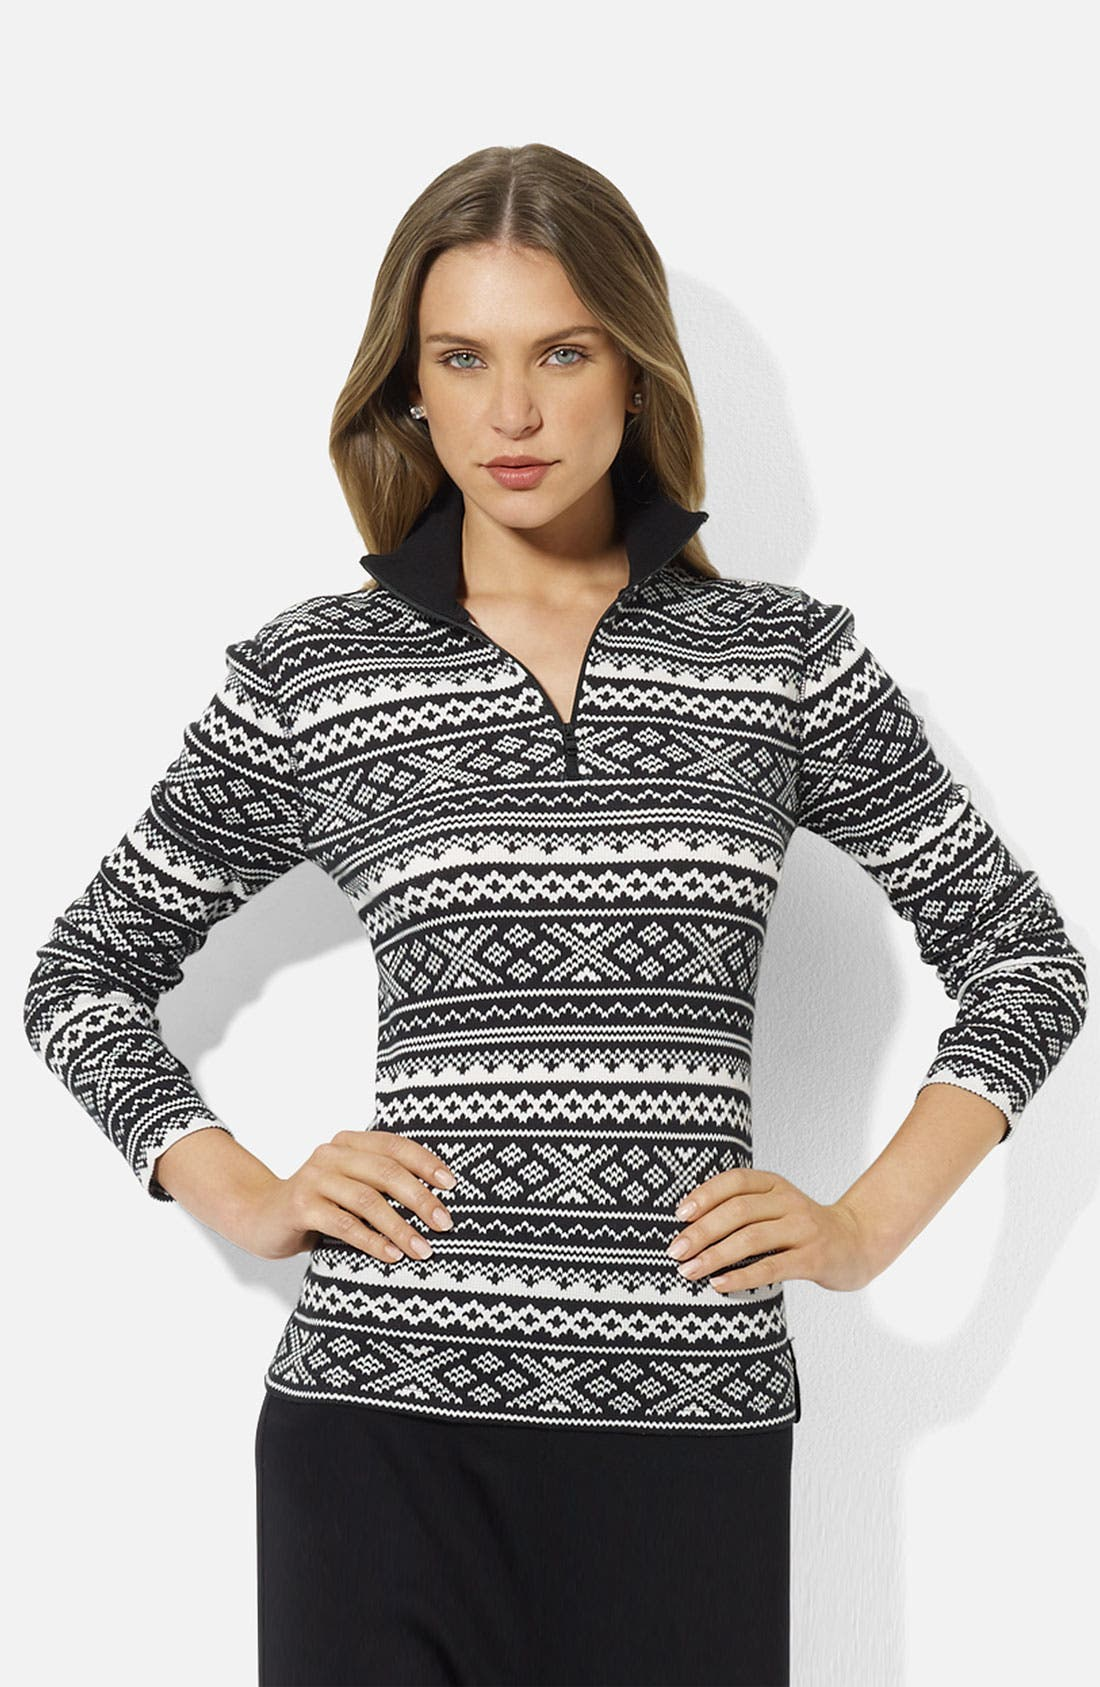 Alternate Image 1 Selected - Lauren Ralph Lauren Half Zip Top (Petite) (Online Exclusive)